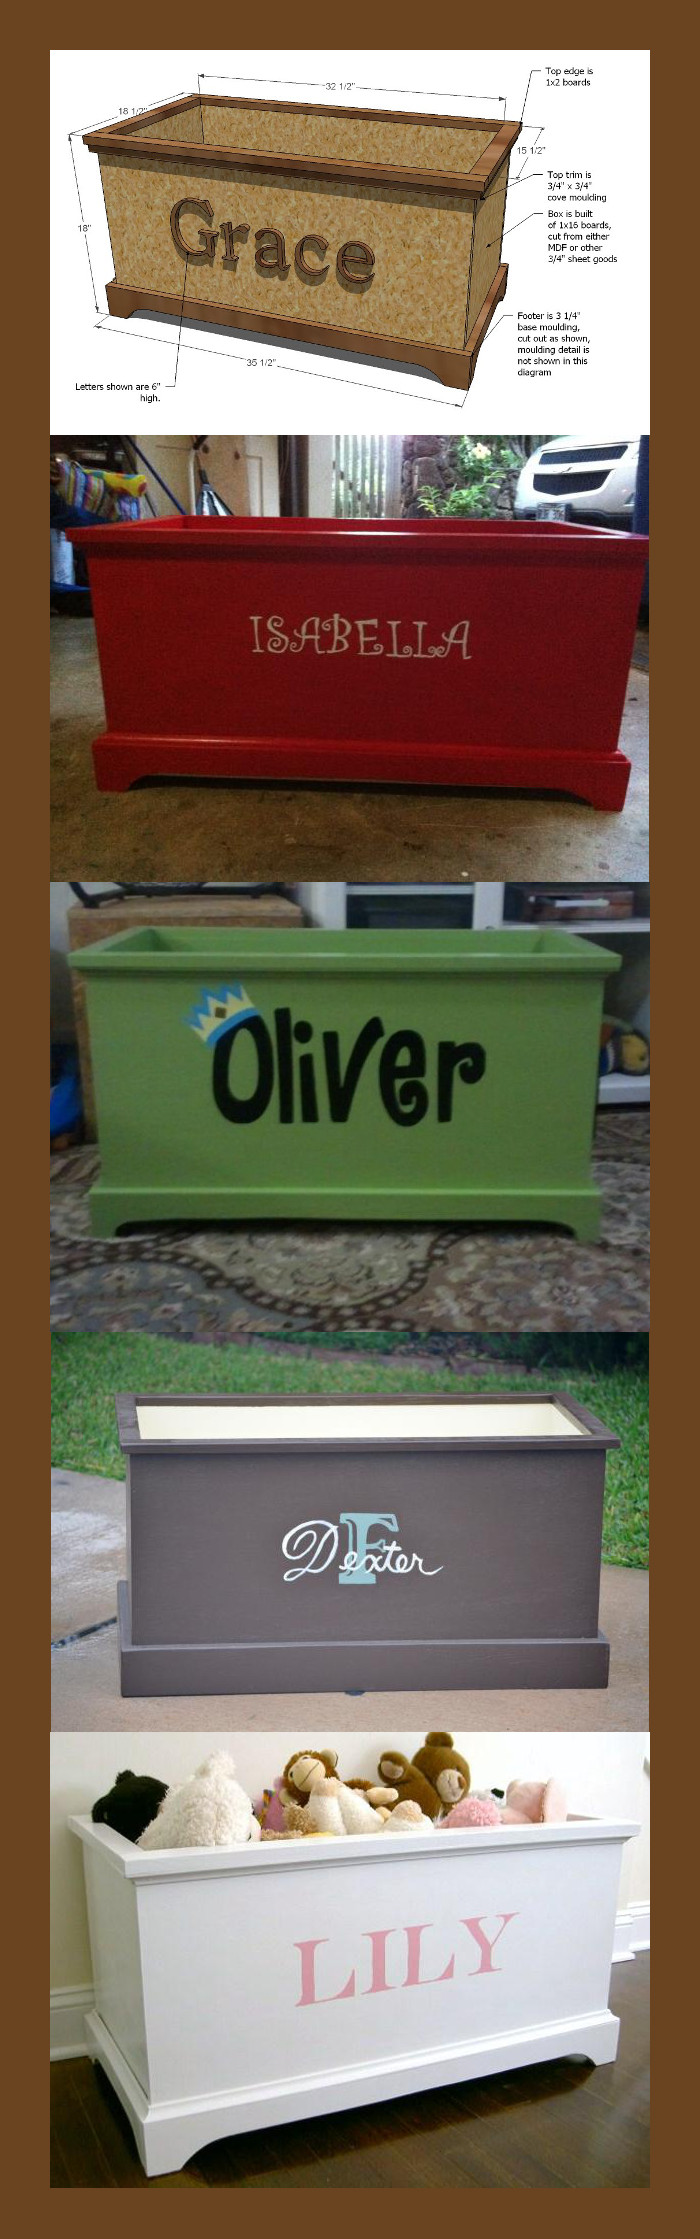 DIY Toy Box for your Dog's Toys